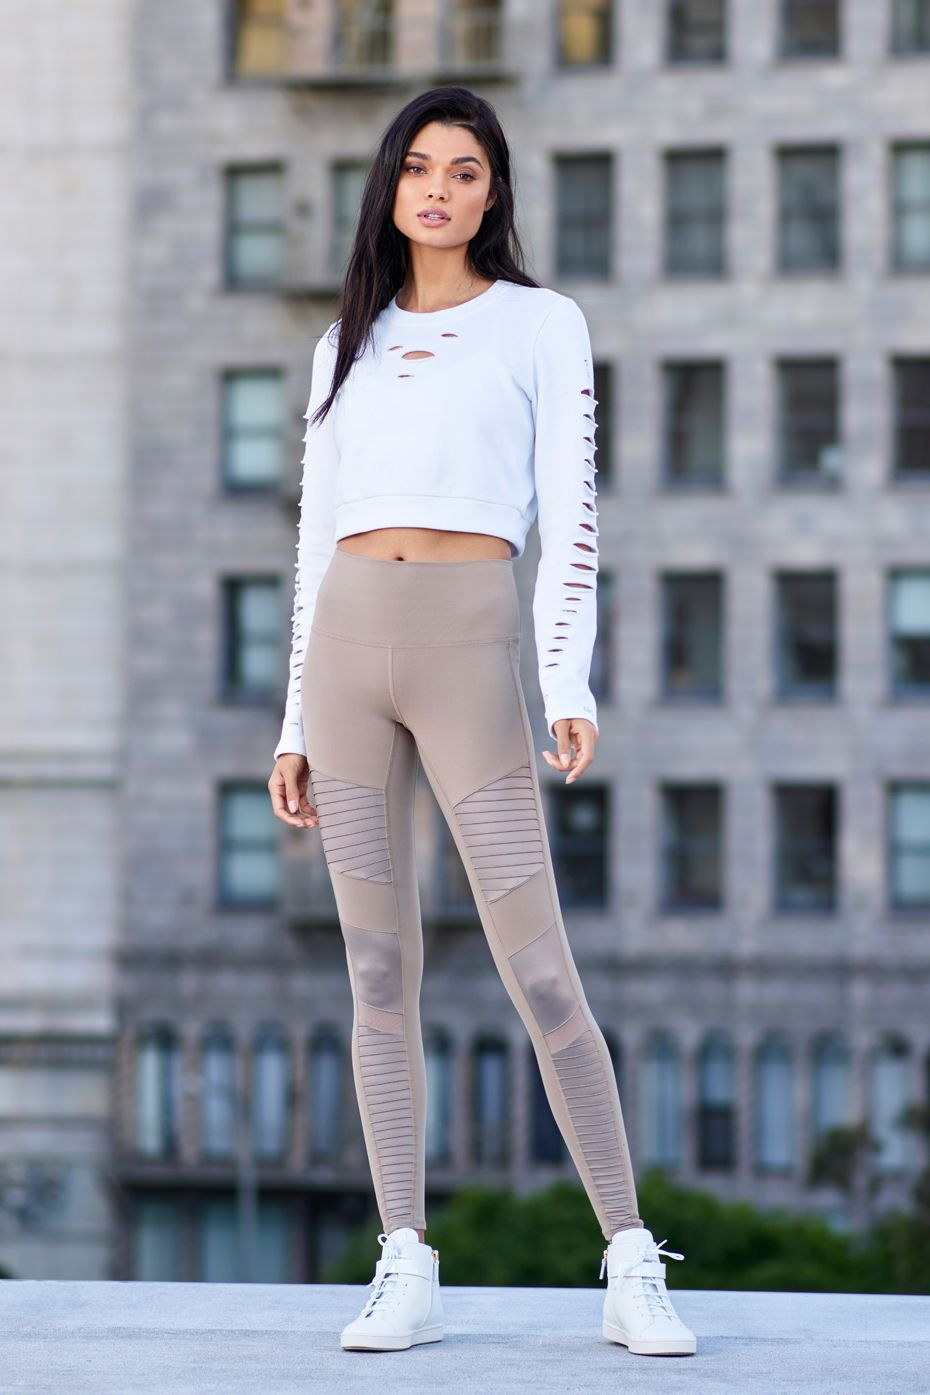 905a8e82fcd15c ALO YOGA || High-Waist Moto Legging and Ripped Warrior Long Sleeve #aloyoga  #beagoddess